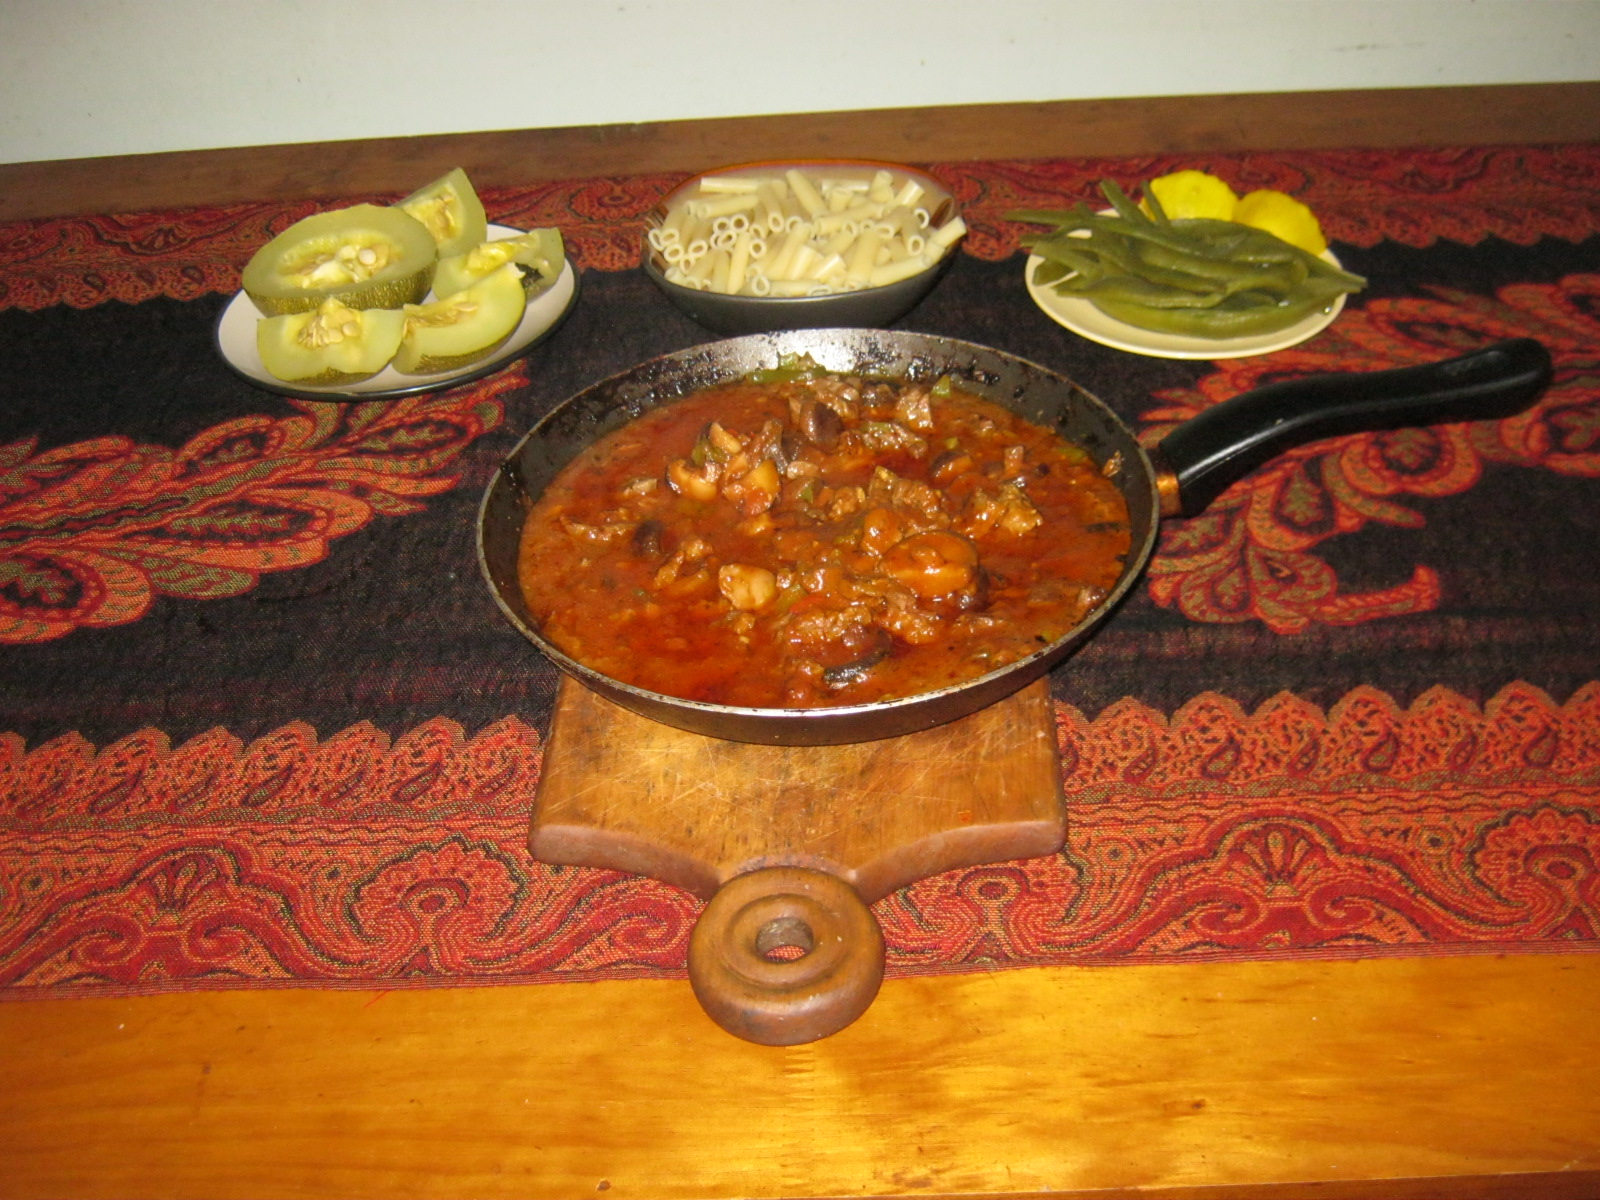 Hungarian Goulash with potatoes and vegetables ready to be served